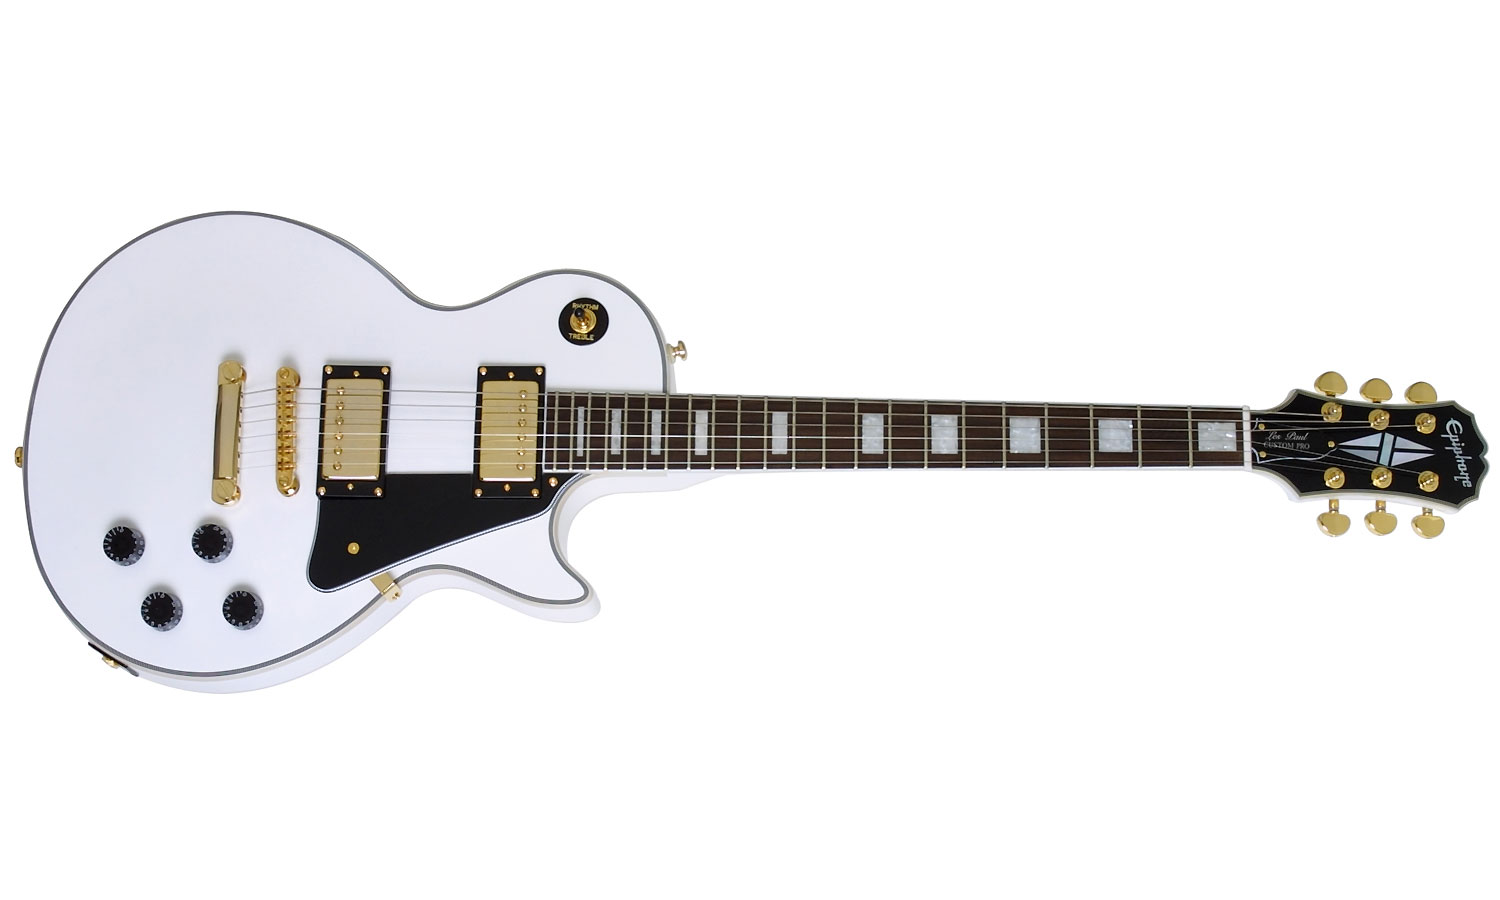 epiphone epiphone les paul custom pro alpine white livr chez vous avec star 39 s music. Black Bedroom Furniture Sets. Home Design Ideas